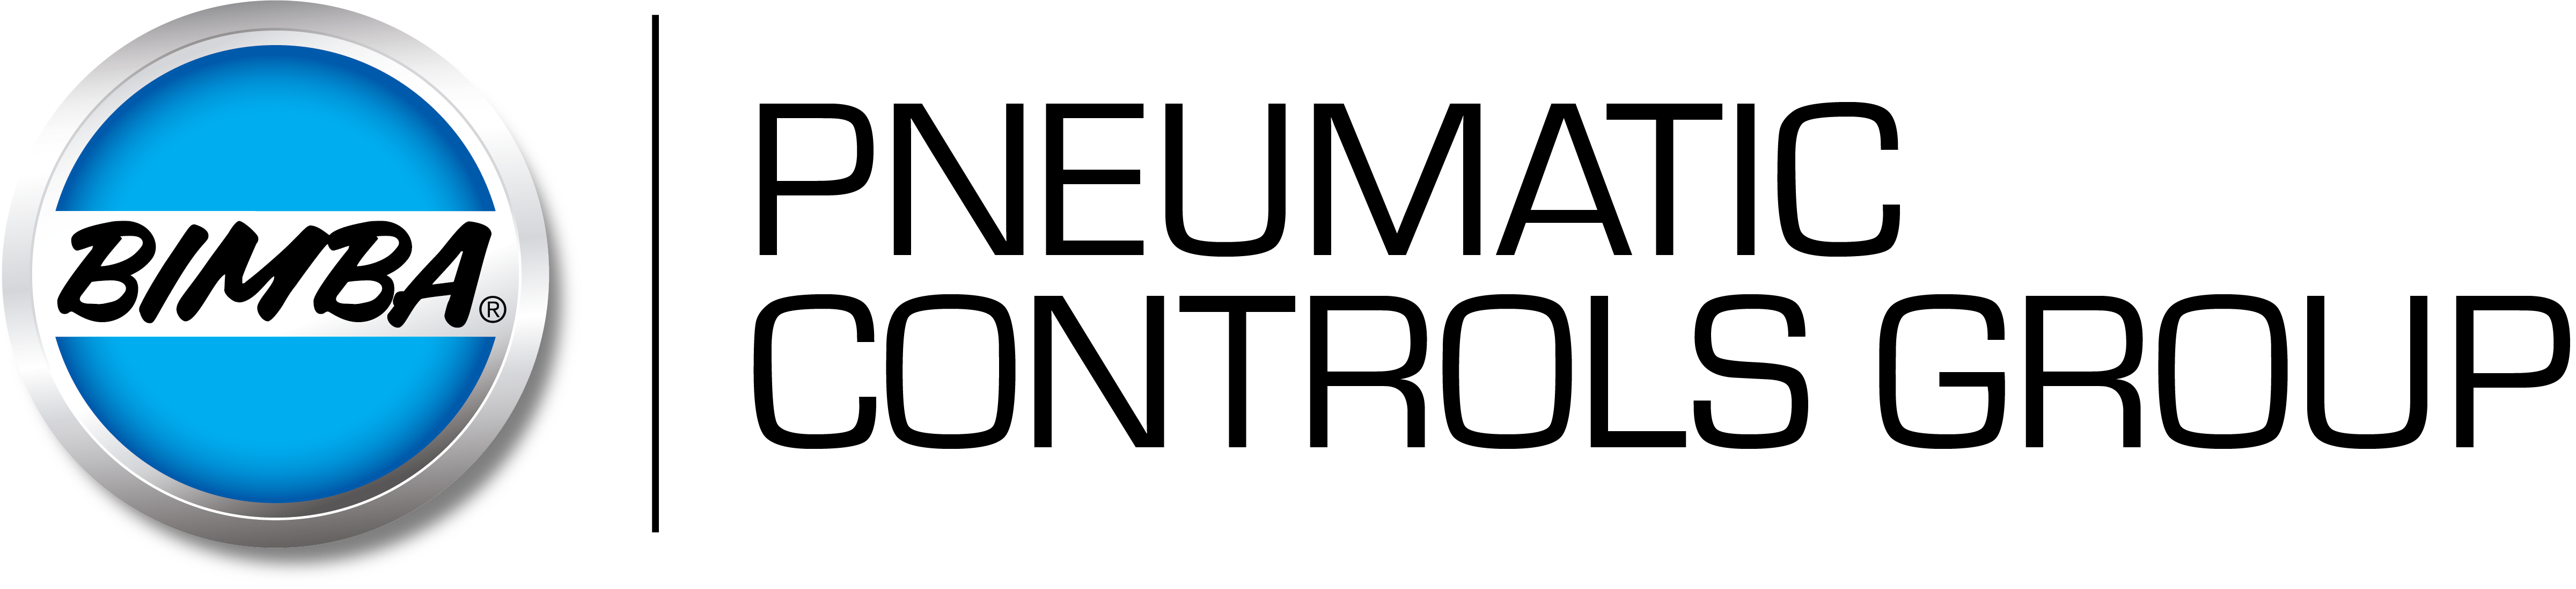 New_Bimba_Dim_4c_logo_PNEUMATIC CONTROLS GROUP.png